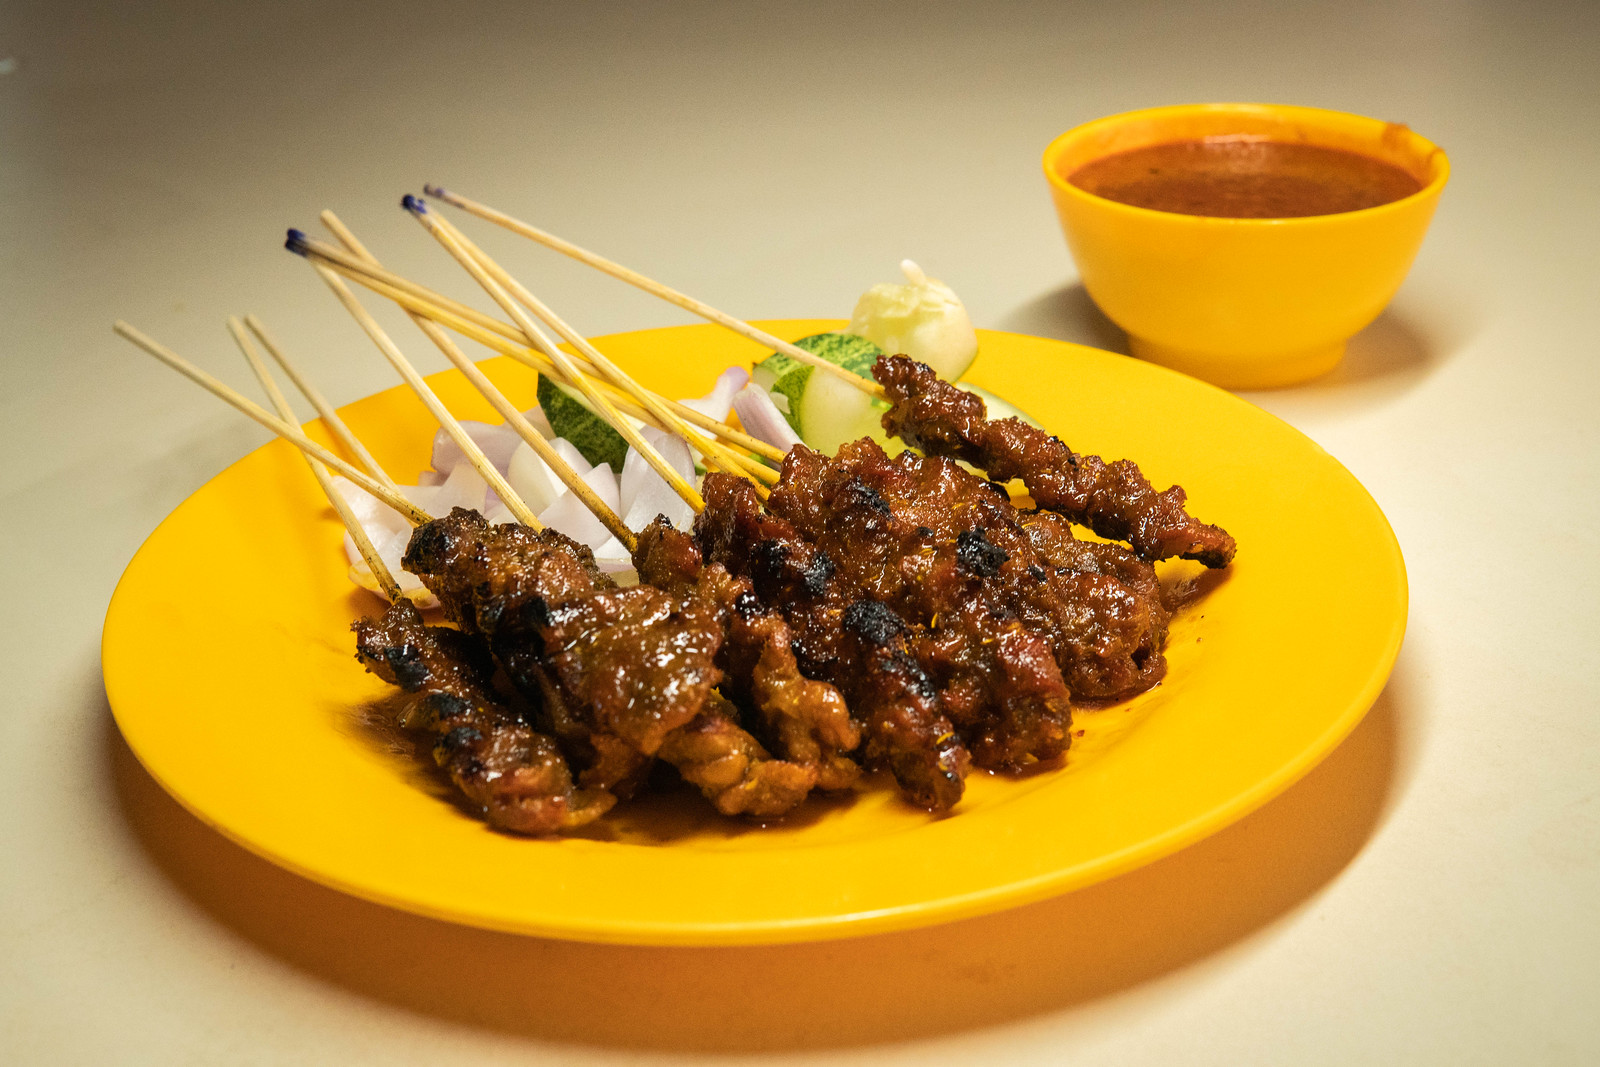 A plate with ten skewers of satay